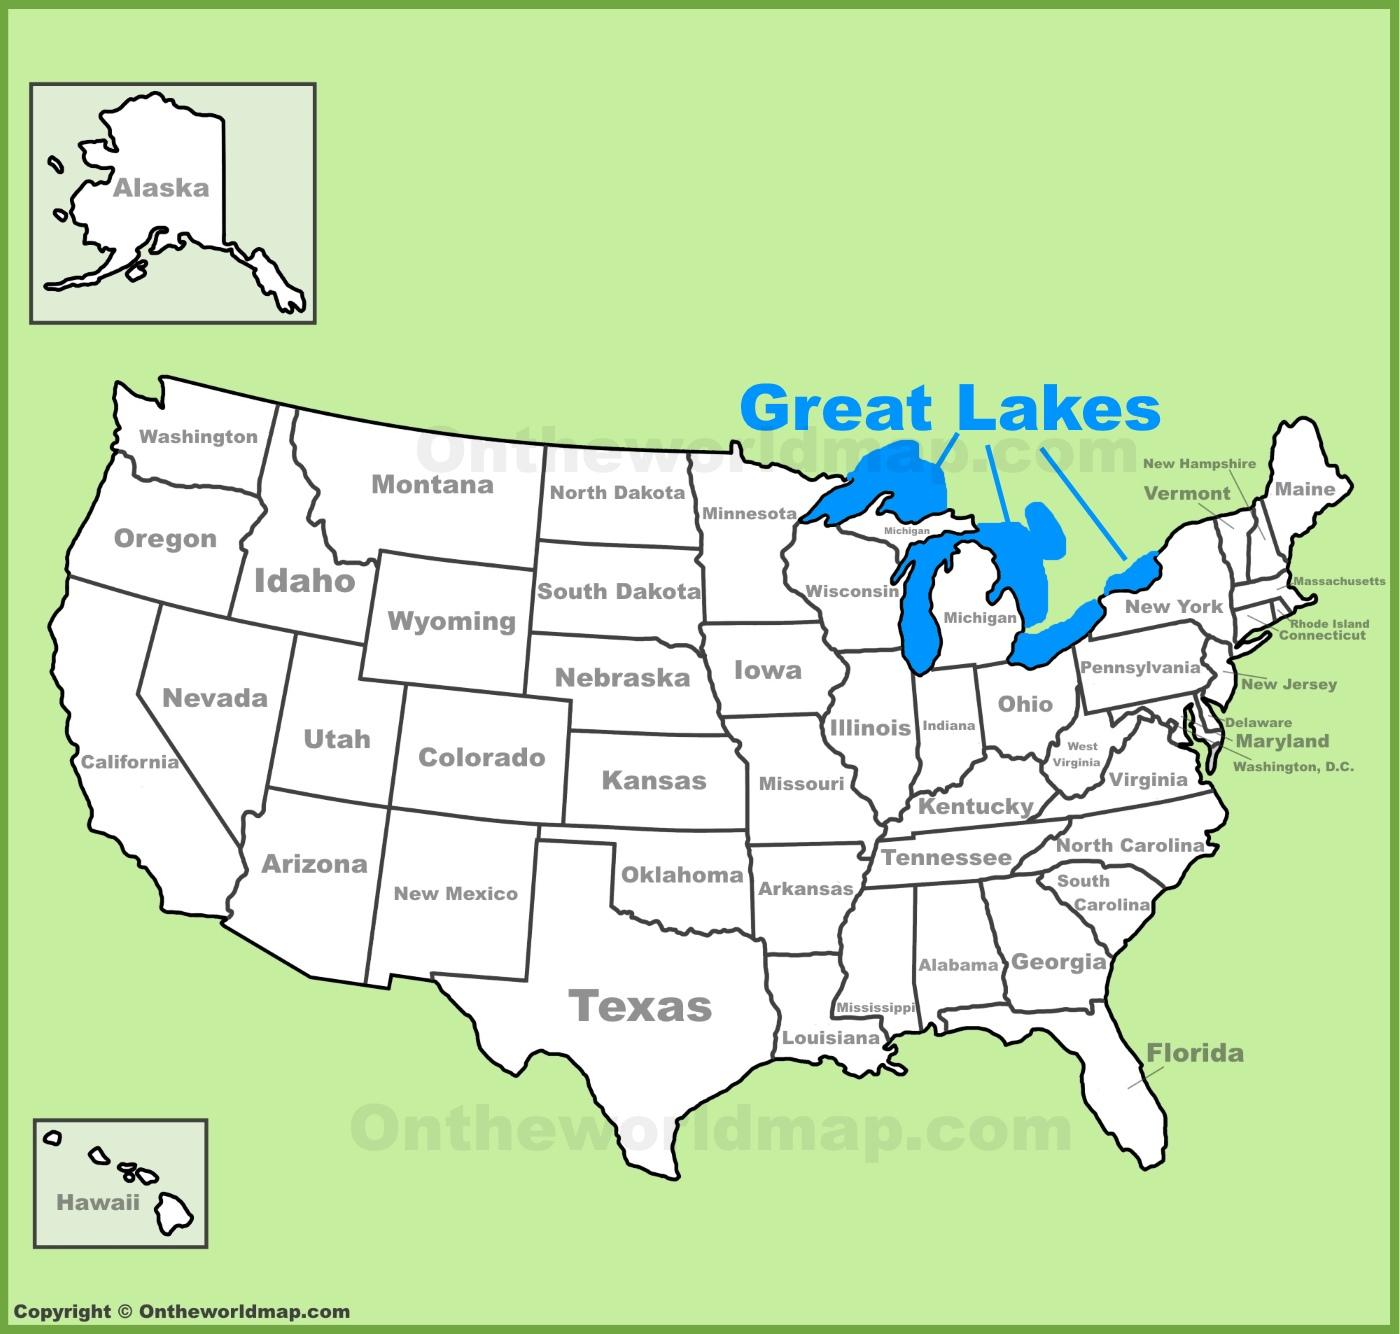 Great Lakes Maps | Maps of Great Lakes